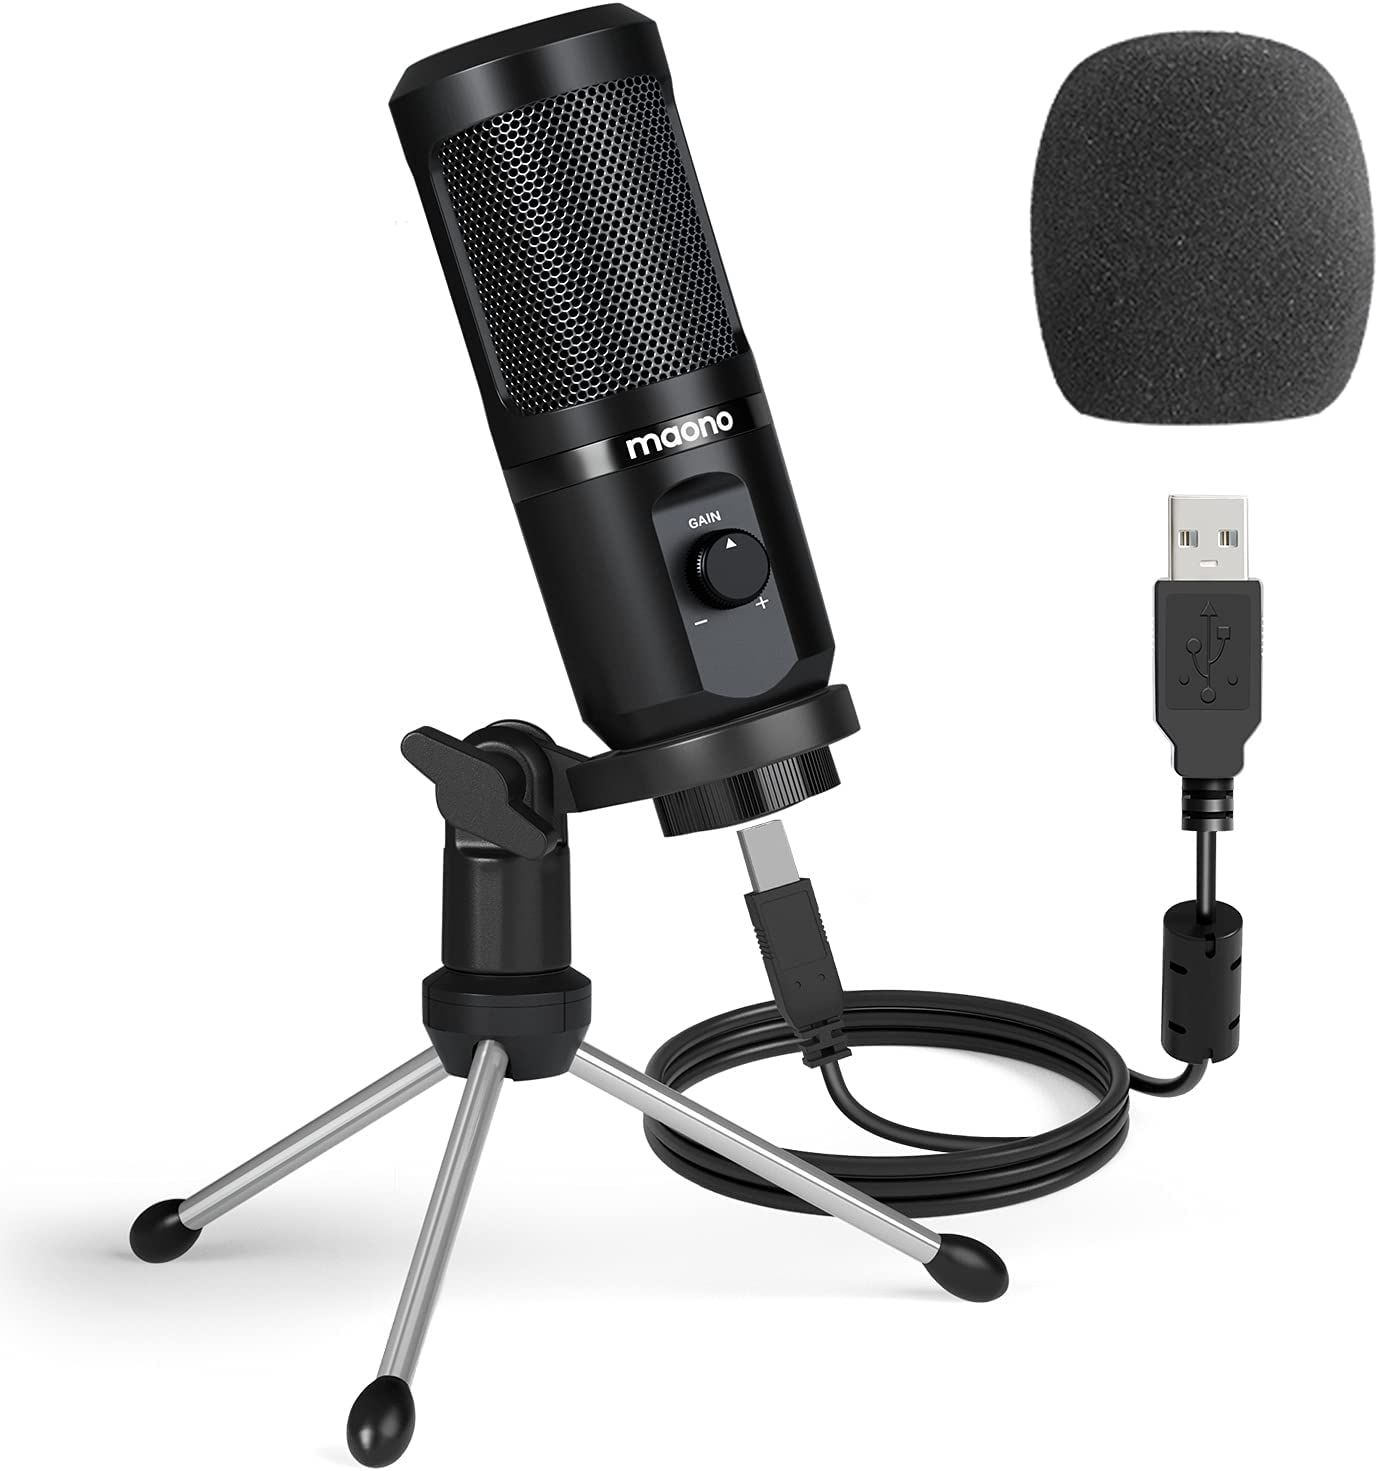 USB Microphone with Mic Gain, MAONO 192Khz/24Bit Podcast PC Computer Condenser Mic for Recording, Gaming, Streaming, Voice Over, YouTube, Twitch, Skype, Compatible with Mac Laptop Desktop, PM461TR